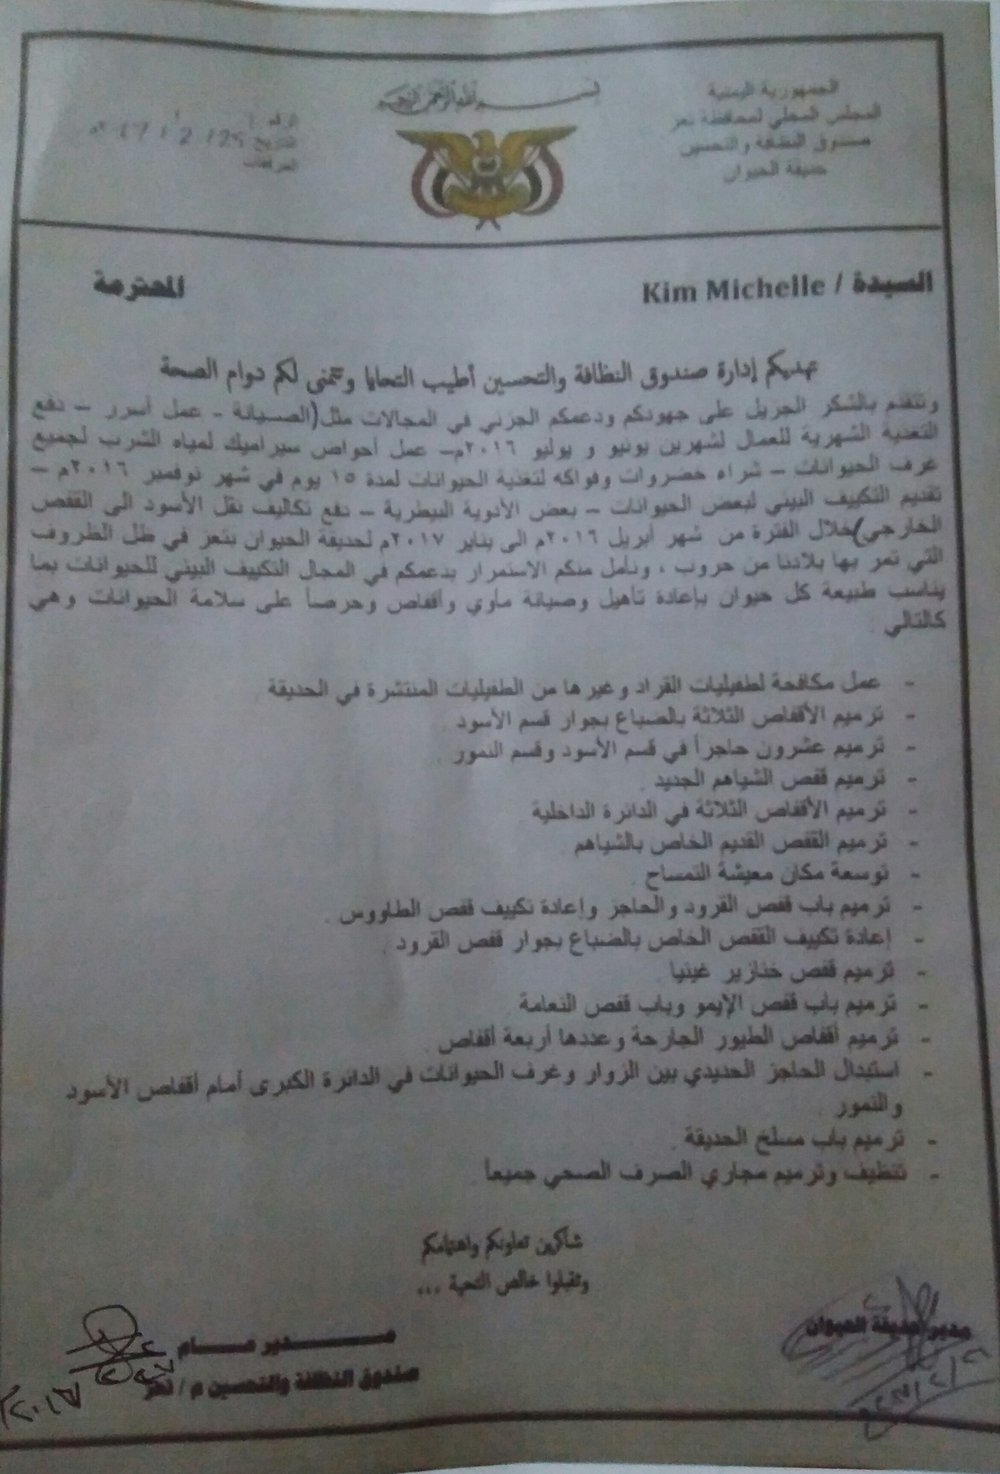 letter of thanks from Mr Ghazi to Kim Michelle for help Taiz Zoo.jpg